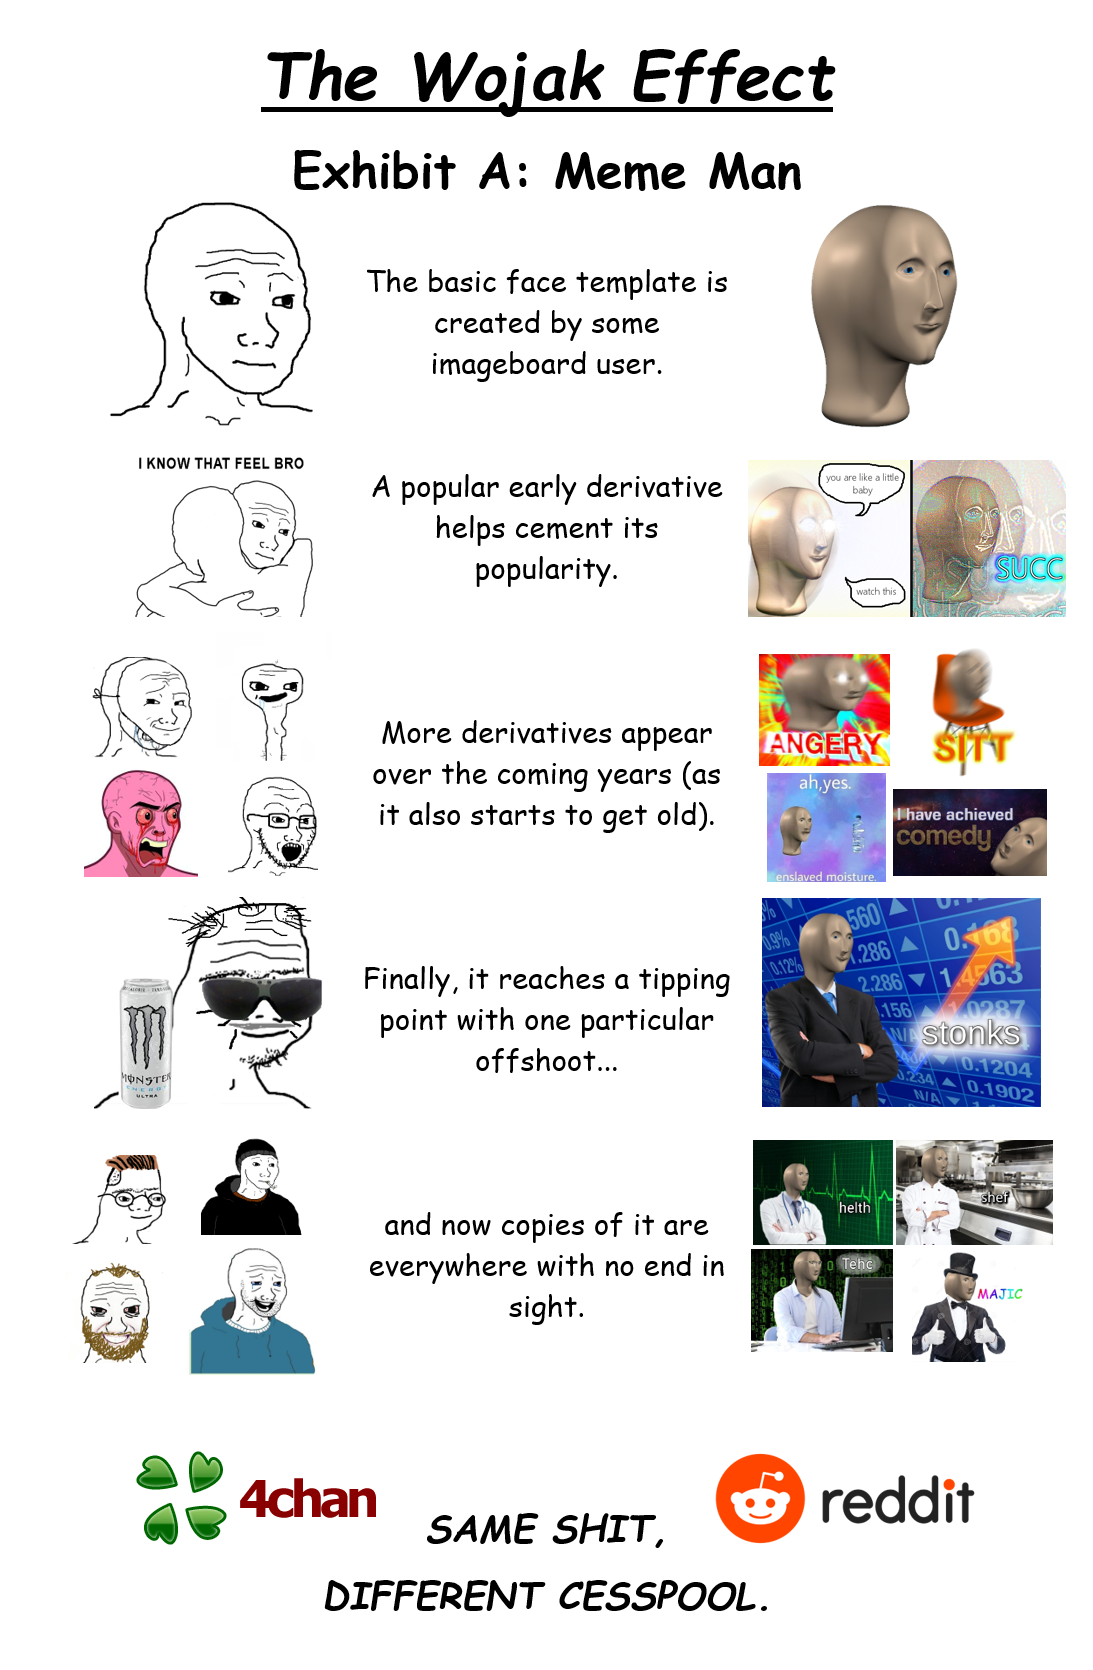 The Wojak Effect Exhibit A Meme Man in 2020 (With